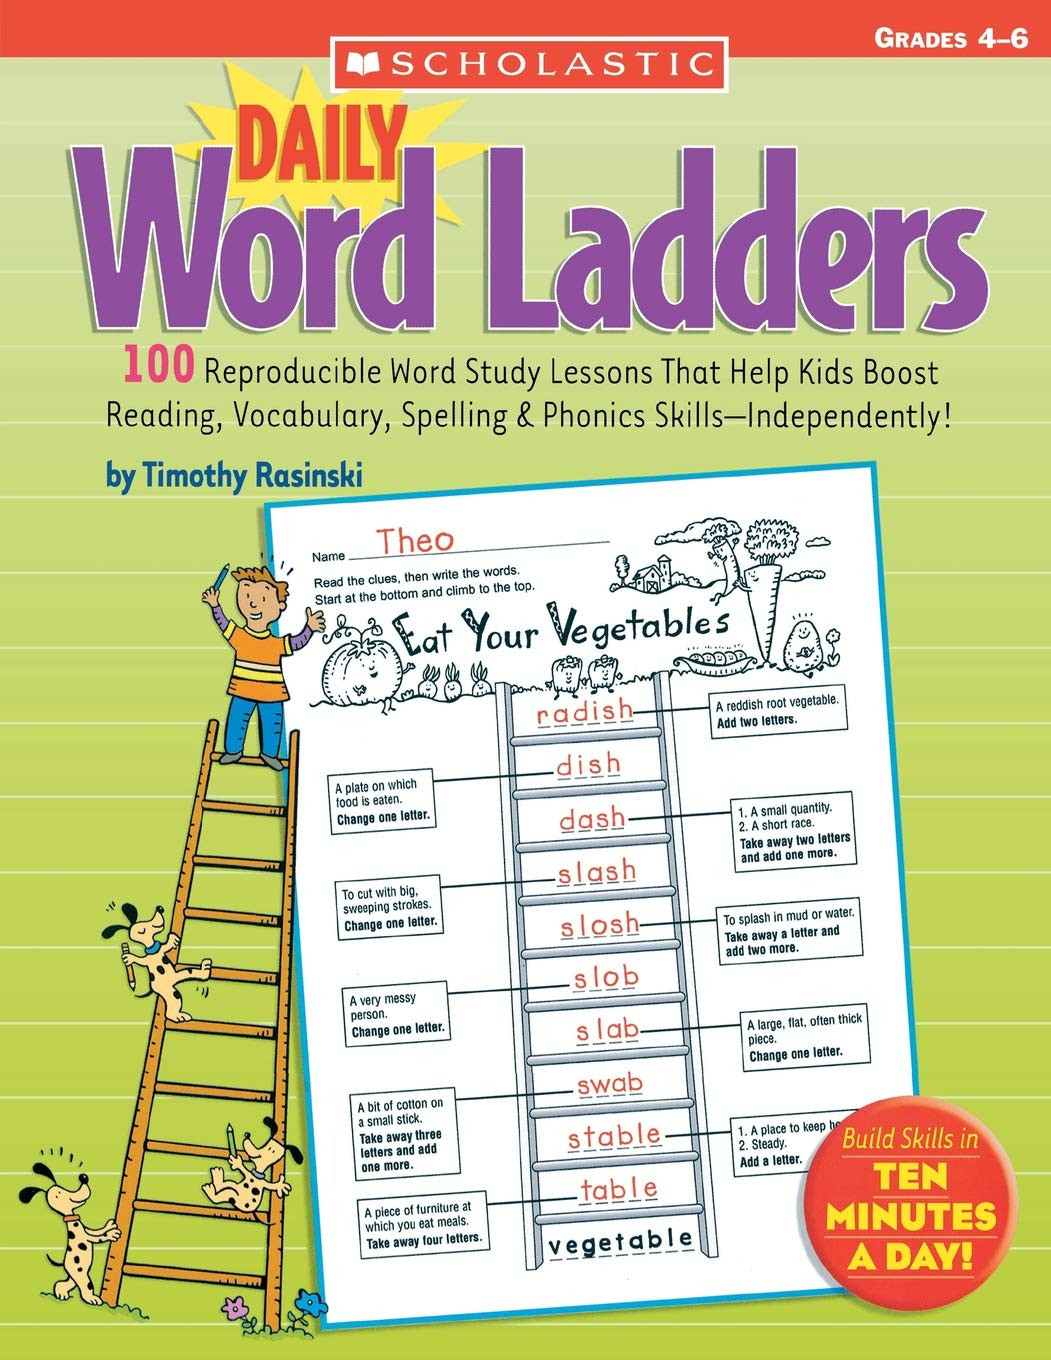 Free Printable Word Ladders Amazon Daily Word Ladders Grades 4–6 100 Reproducible